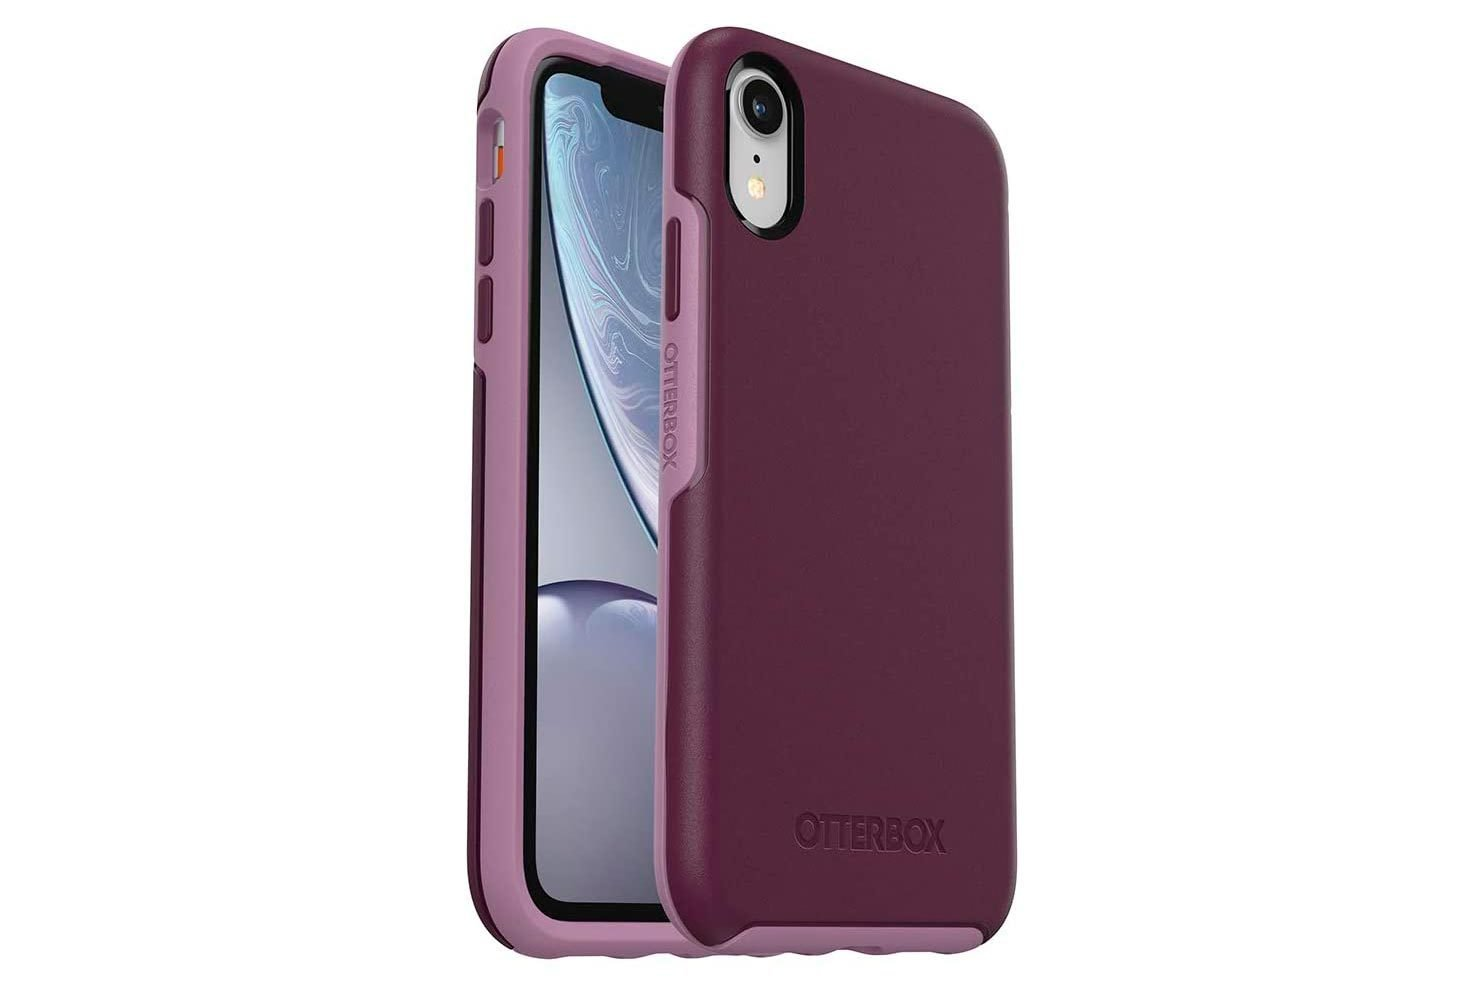 otterbox cell phone case